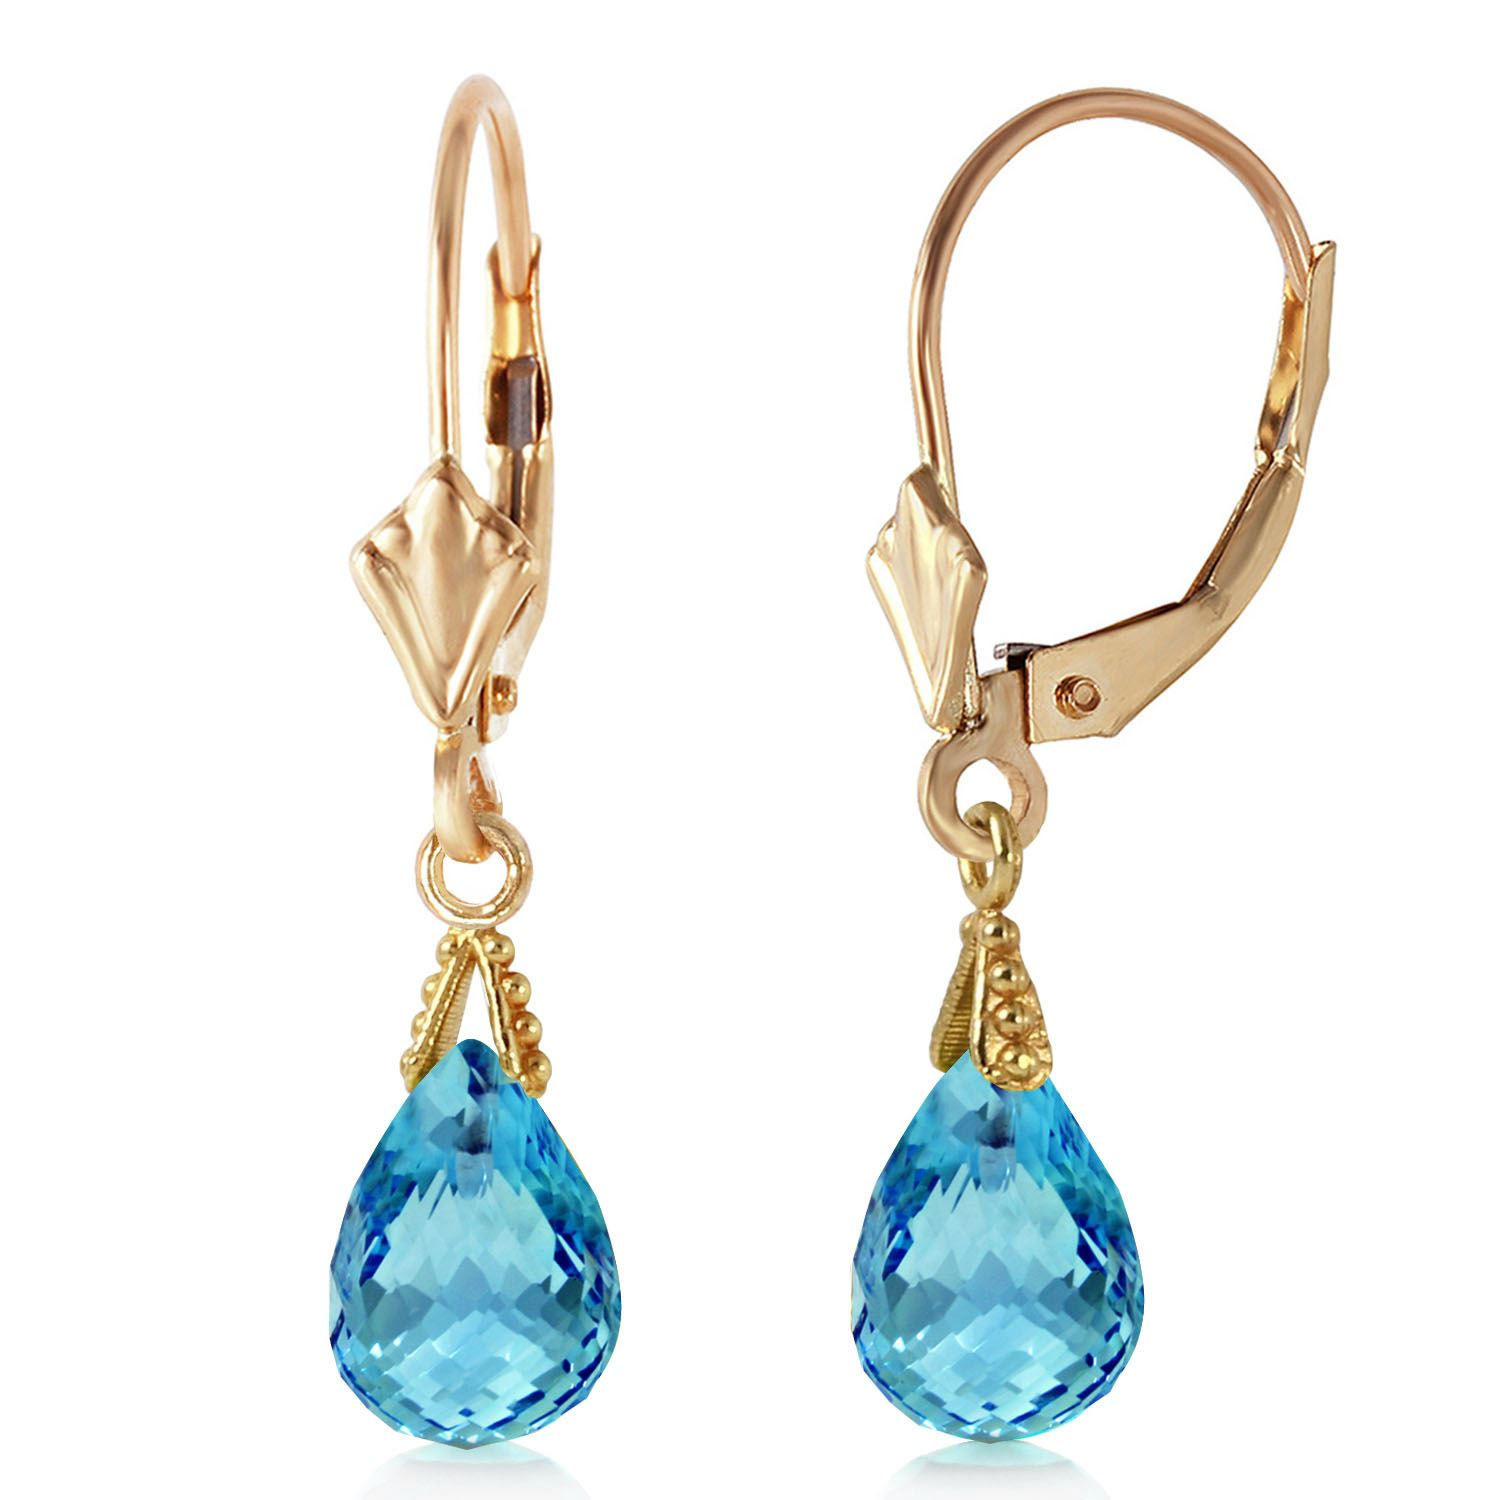 blue buy category earrings sterling india gemstone made silver with ziveg online swarovski zirconia